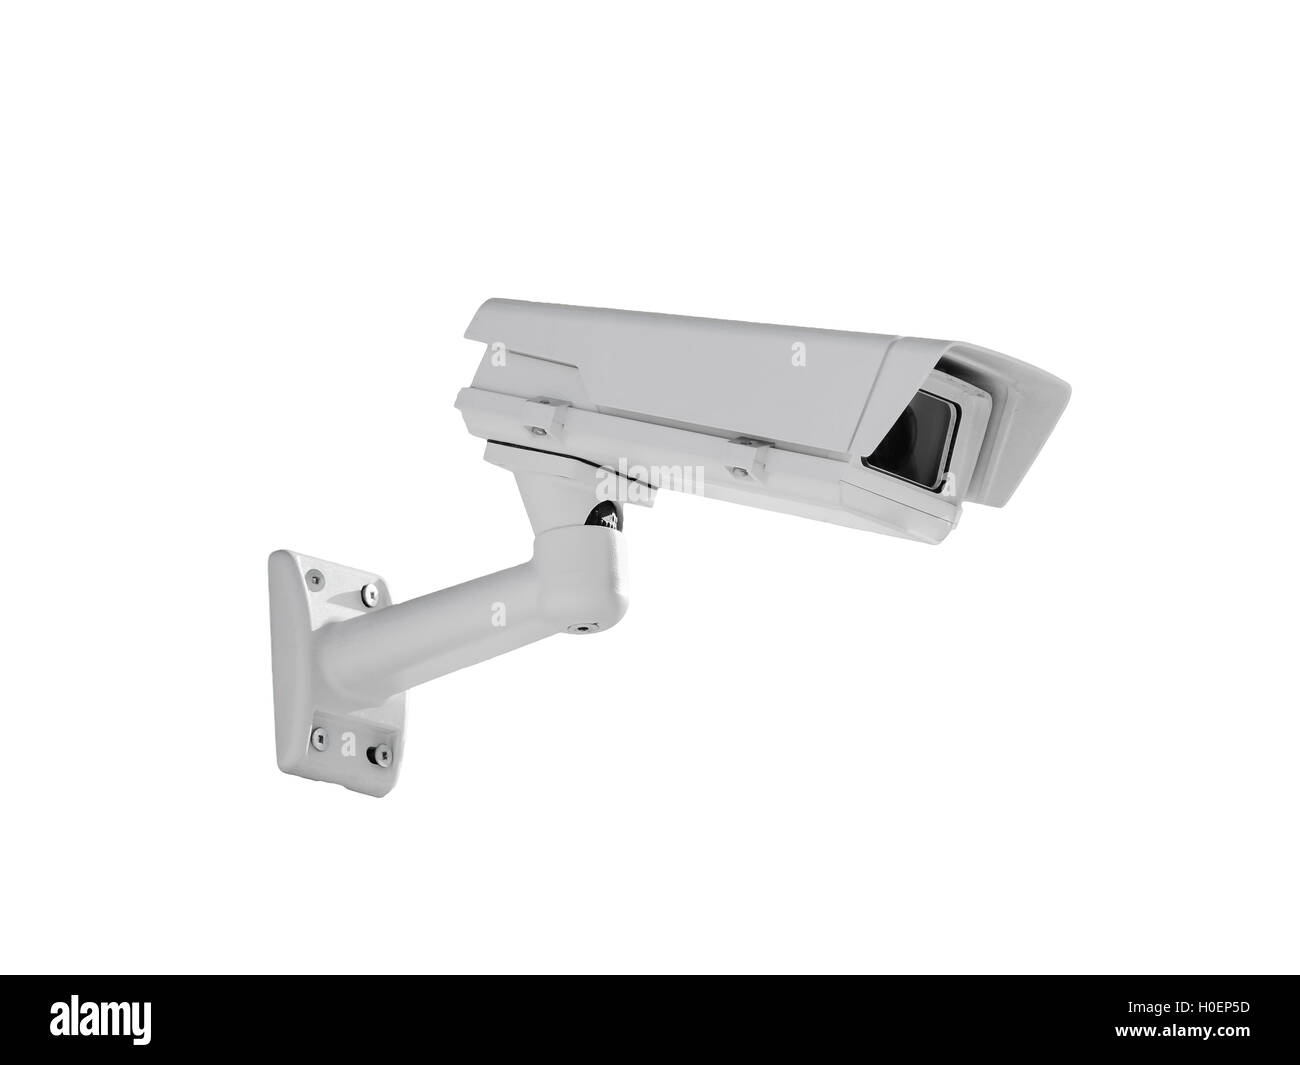 Heavy duty exterior surveillance camera side view isolated on white background - Stock Image